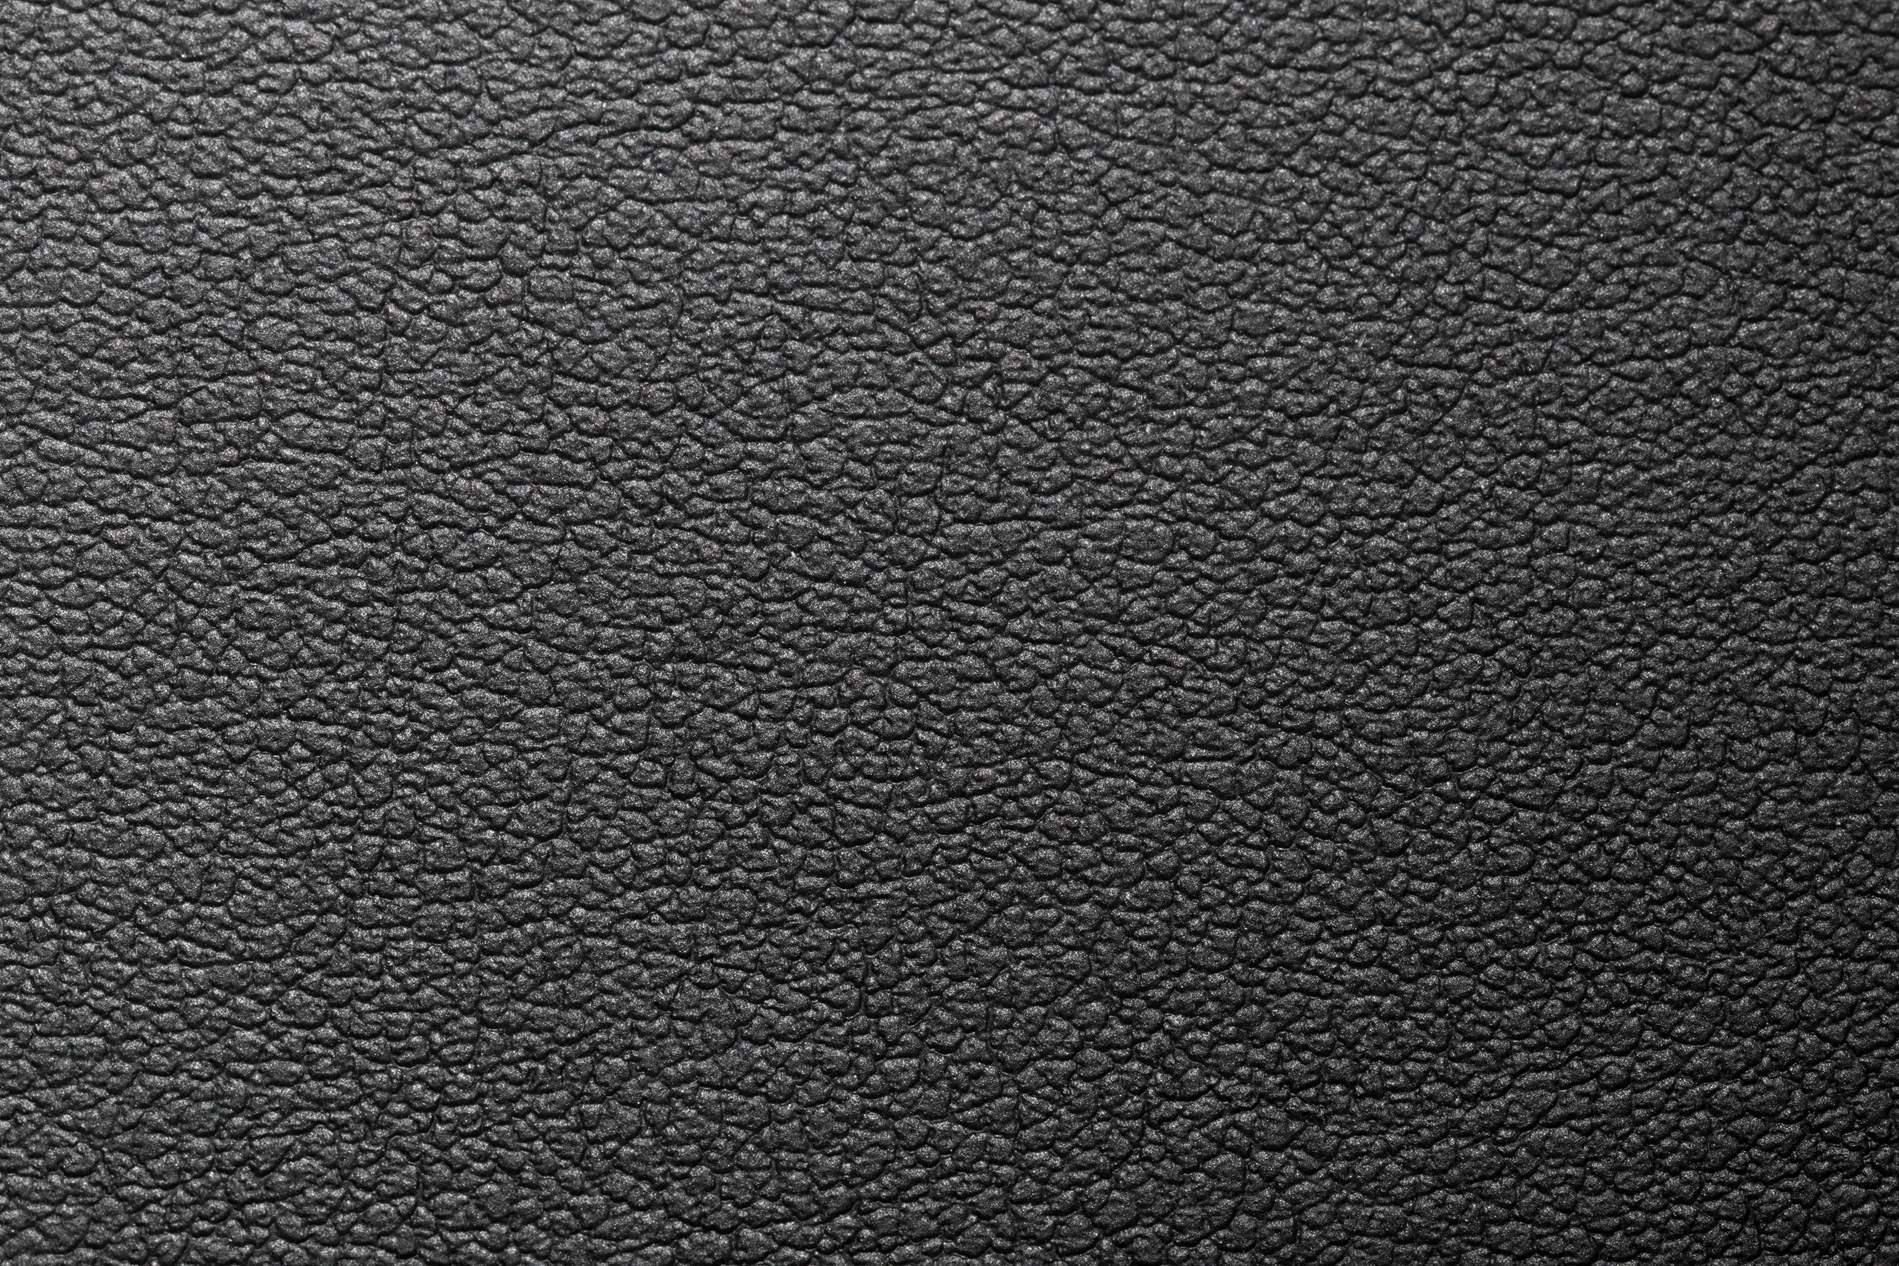 Black Clean Leather Texture Background Photohdx